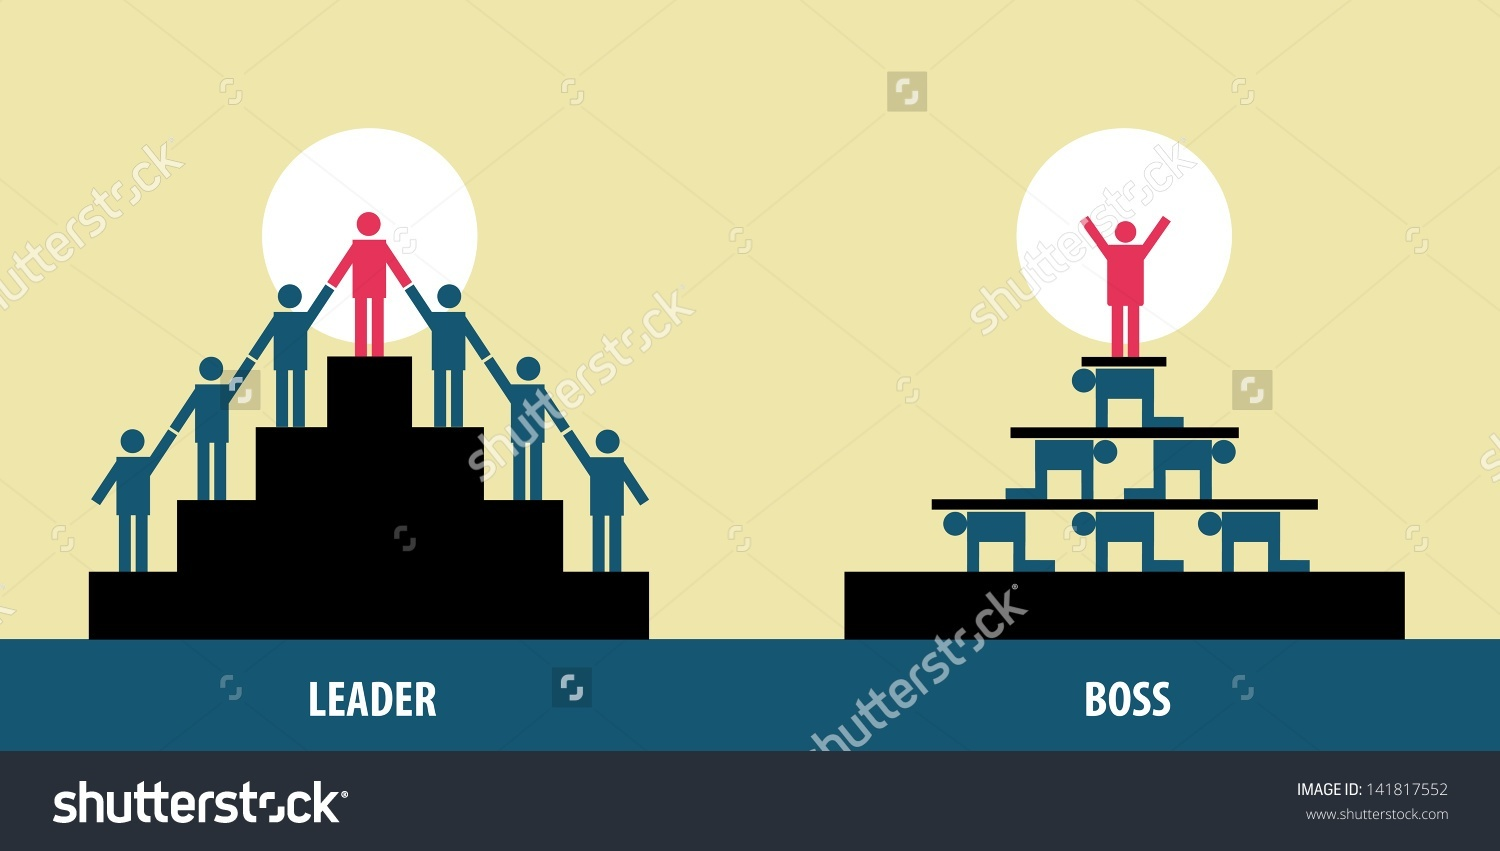 boss-vs-leader-2.jpg